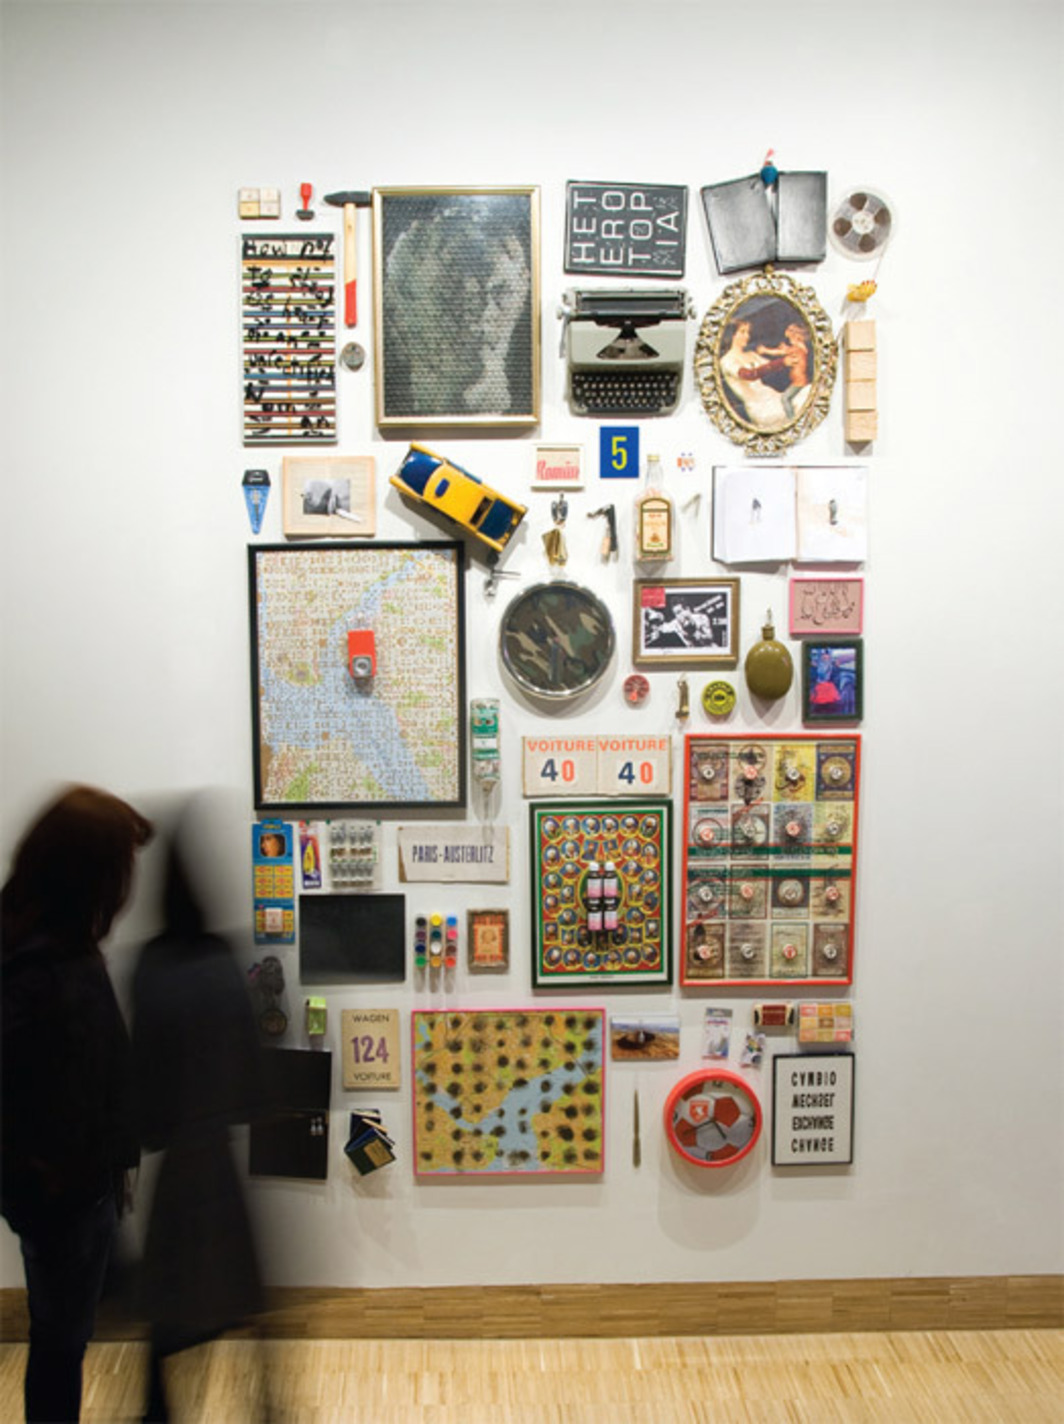 "Hüseyin Bahri Alptekin and Michael Morris, Heterotopia, 1992, mixed media, 98 1/2 x 65""."